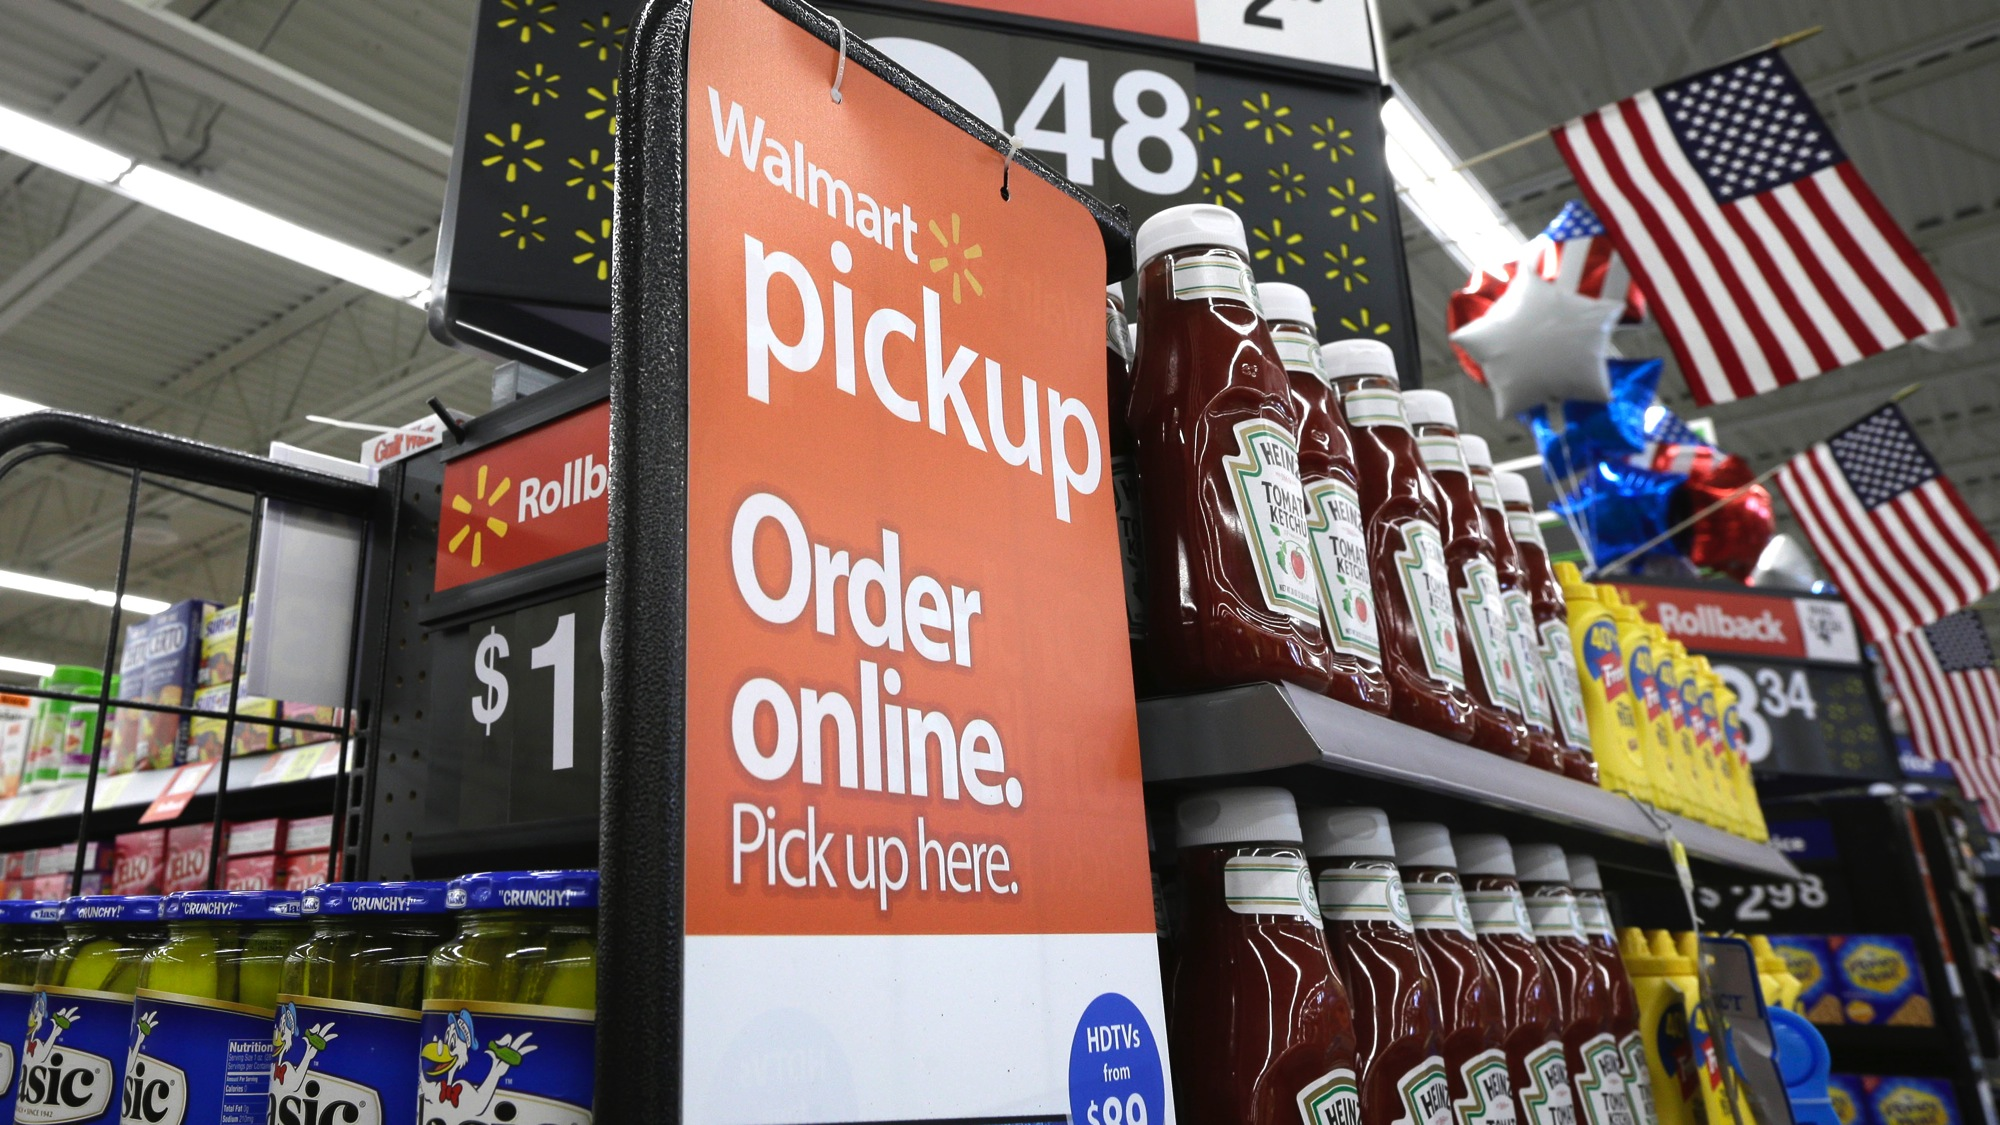 A sign encouraging customers to order grocery items online and pick them up at a store is displayed at a Wal-Mart Neighborhood Market in Bentonville, Ark., Thursday, June 4, 2015. (AP Photo/Danny Johnston)